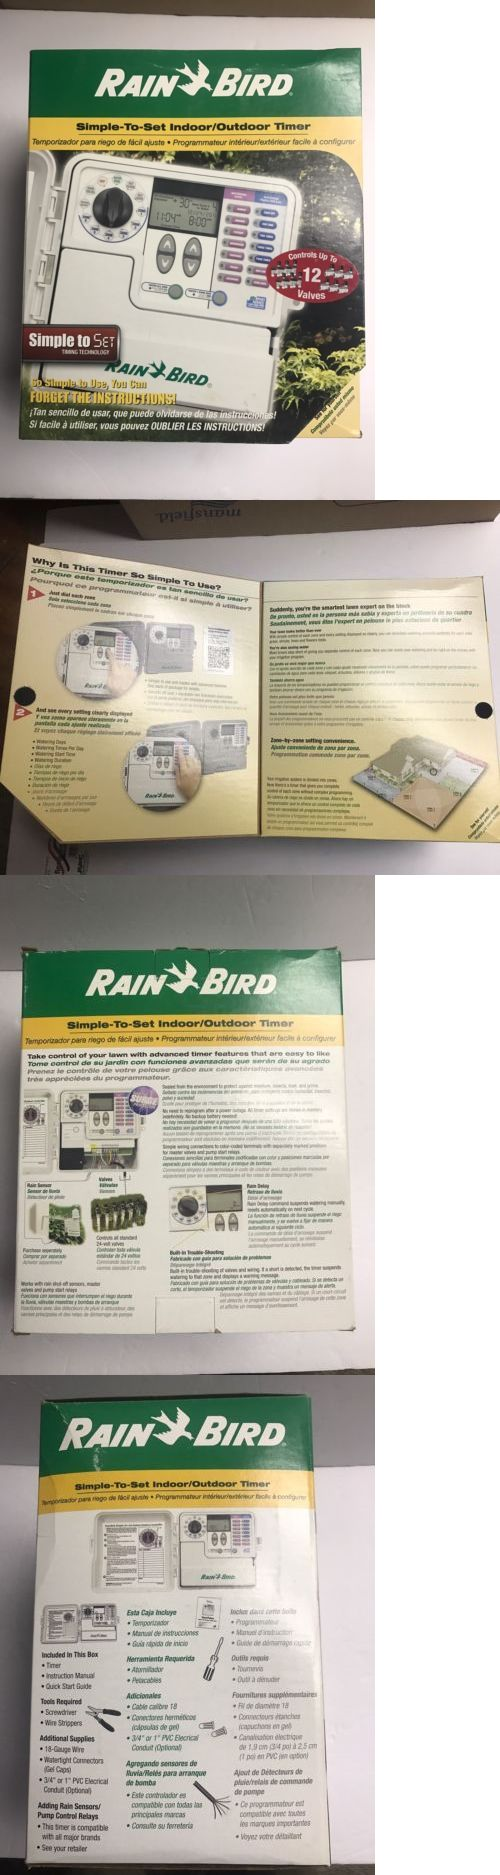 Watering Timers and Controllers 75672: New Rain Bird 12 Zone Indoor Outdoor Water Sprinkler Timer Irrigation Controller -> BUY IT NOW ONLY: $94.85 on eBay!